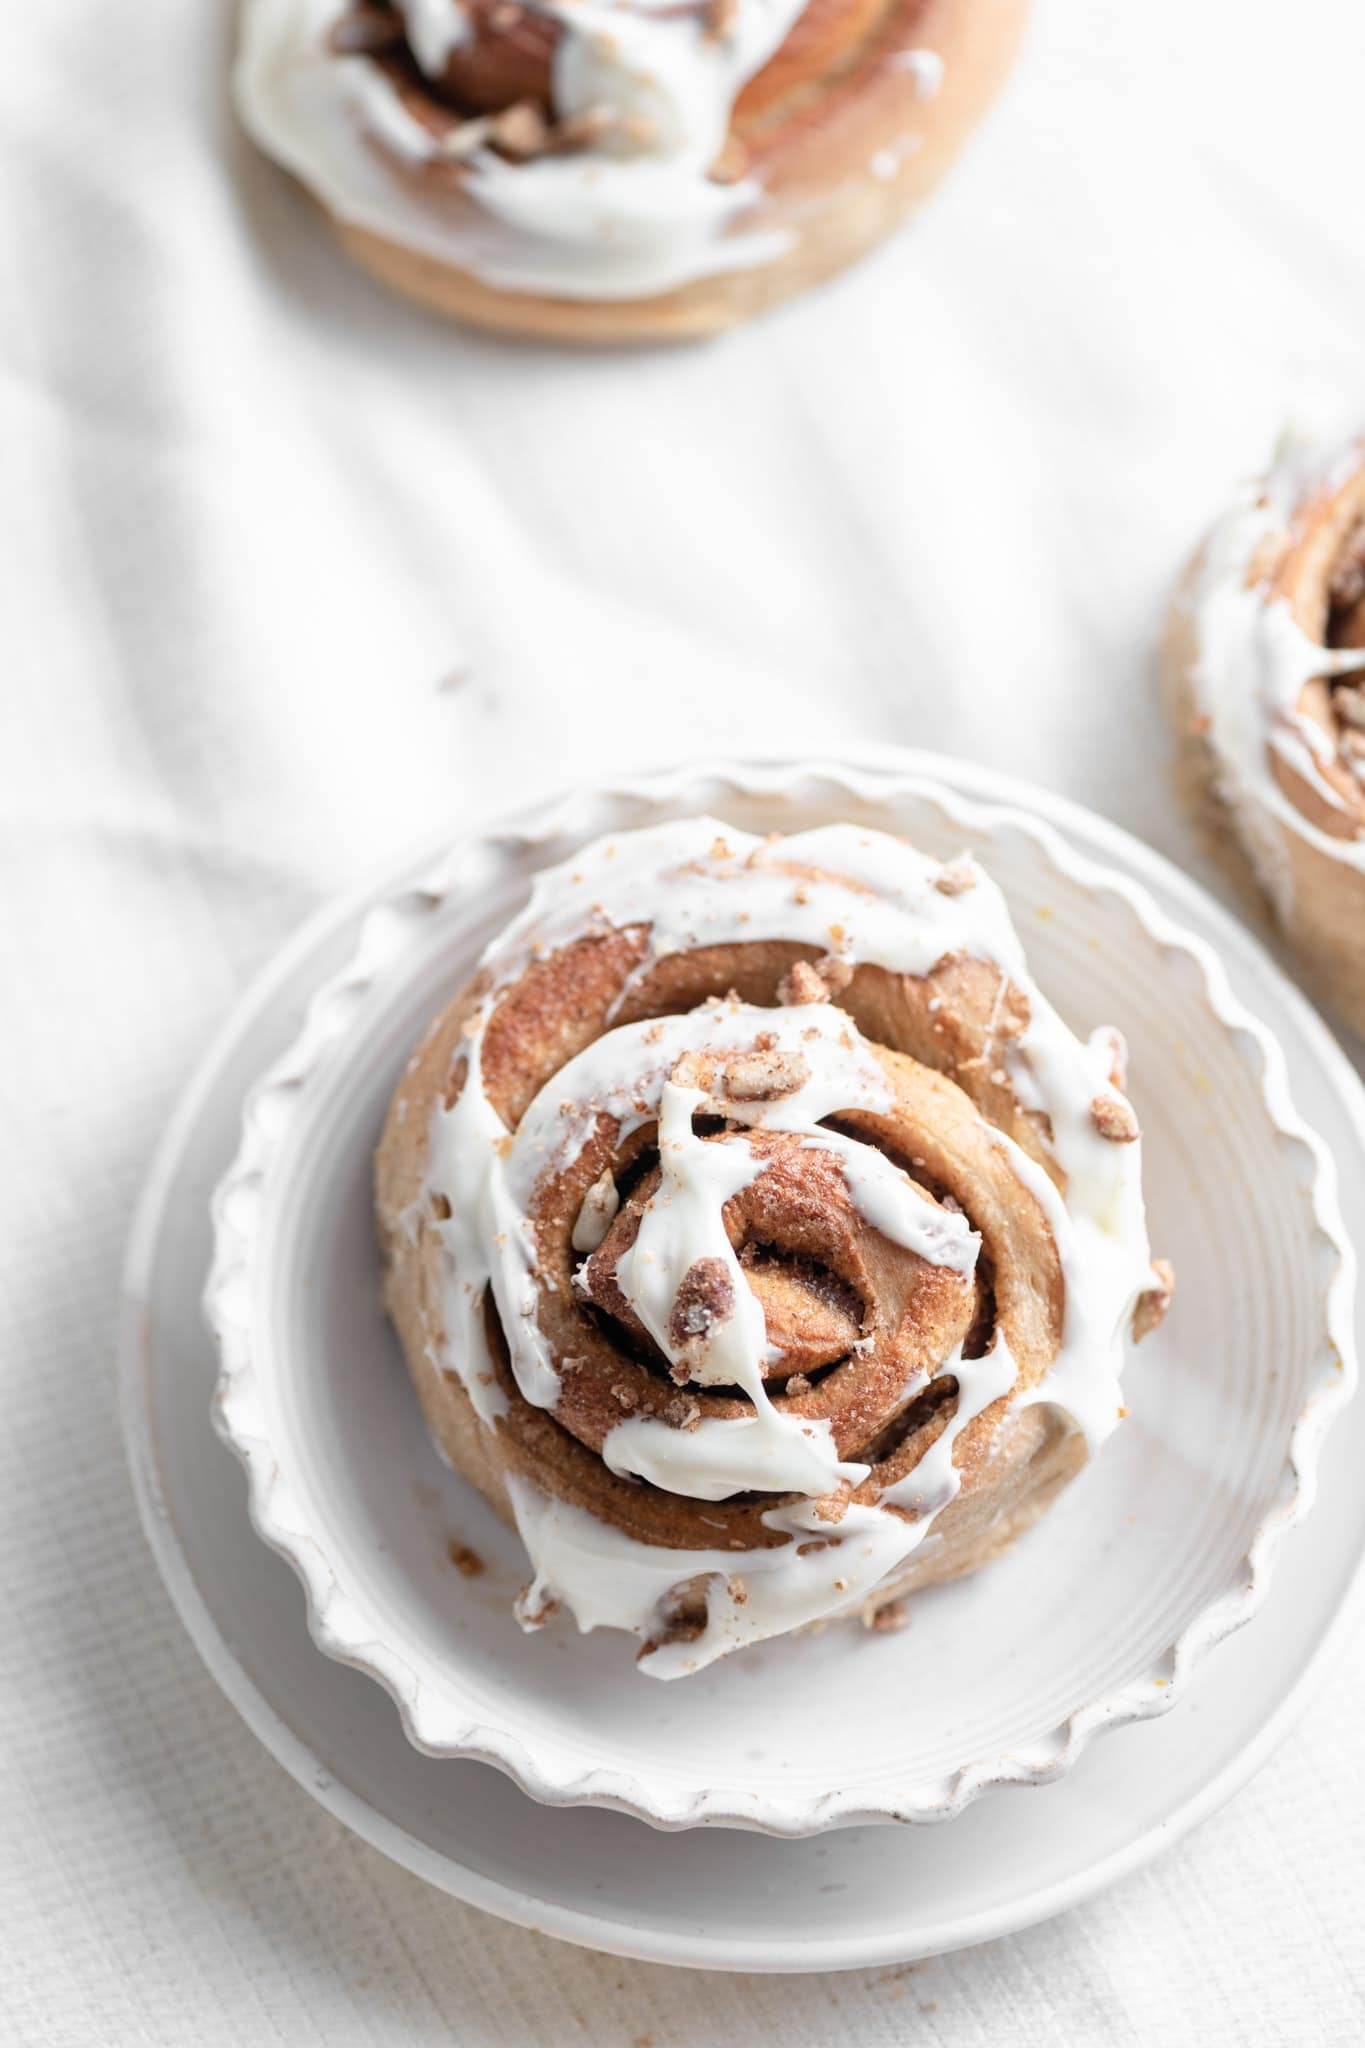 cream cheese frosted cinnamon roll with candied pecans